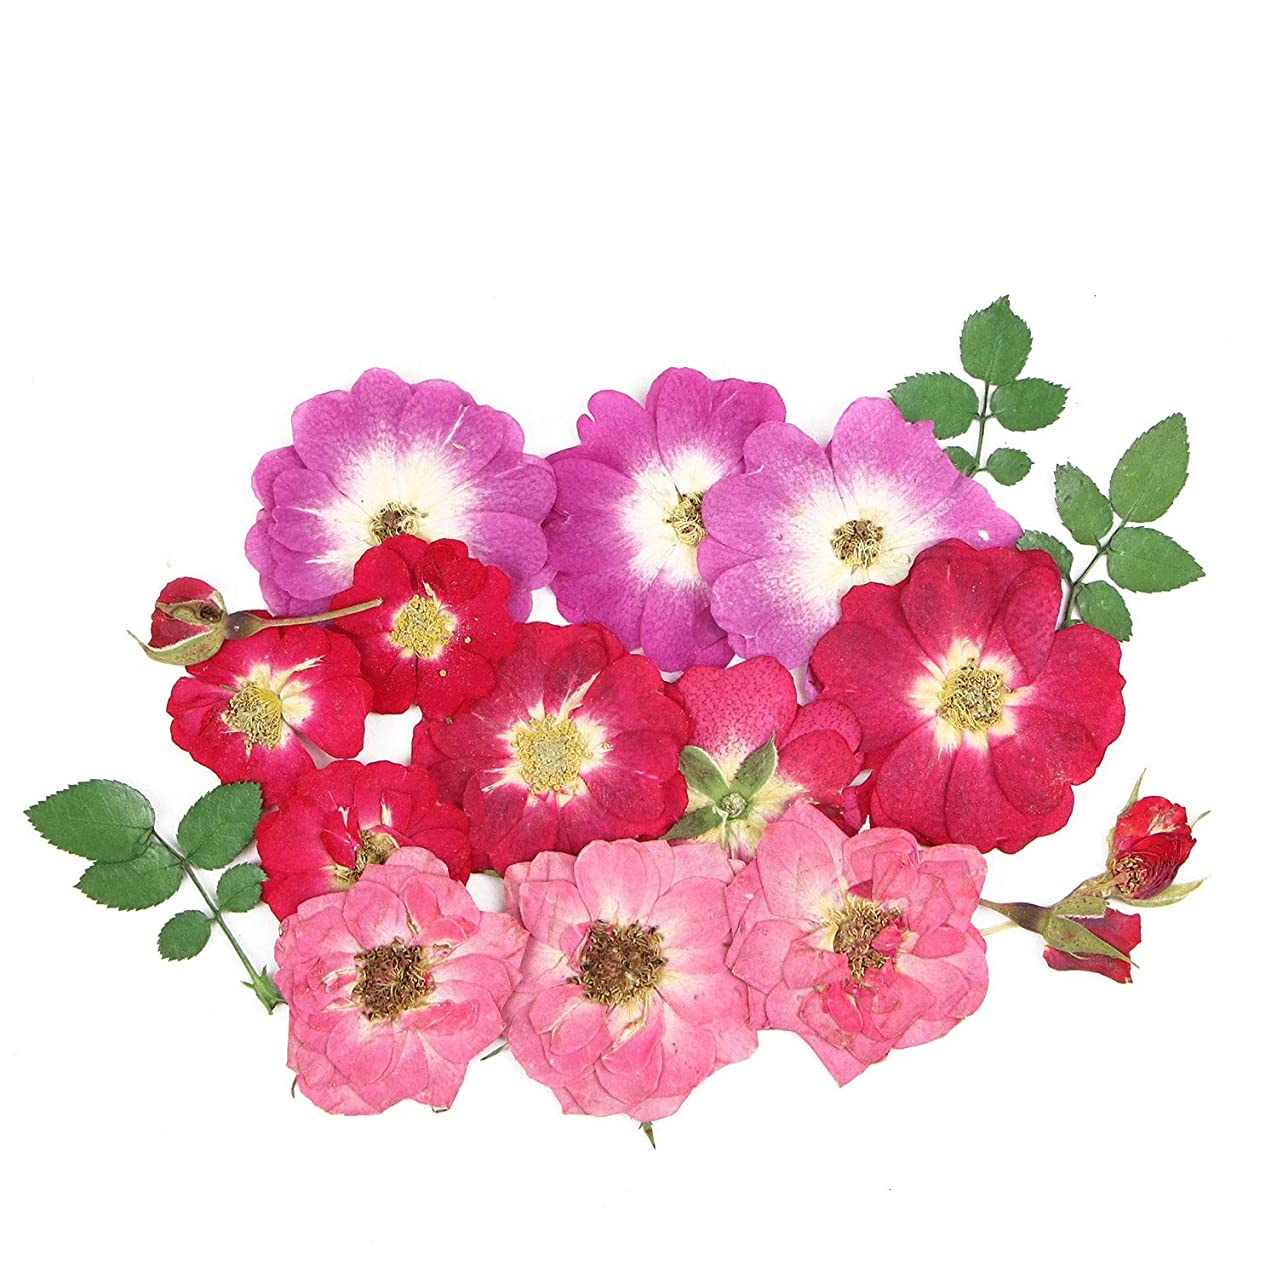 Monrocco 19Pcs Mixed Size Real Pressed Dried Flowers Dried Pressed Rose Flowers for Card Making Jewelry Resin Crafts